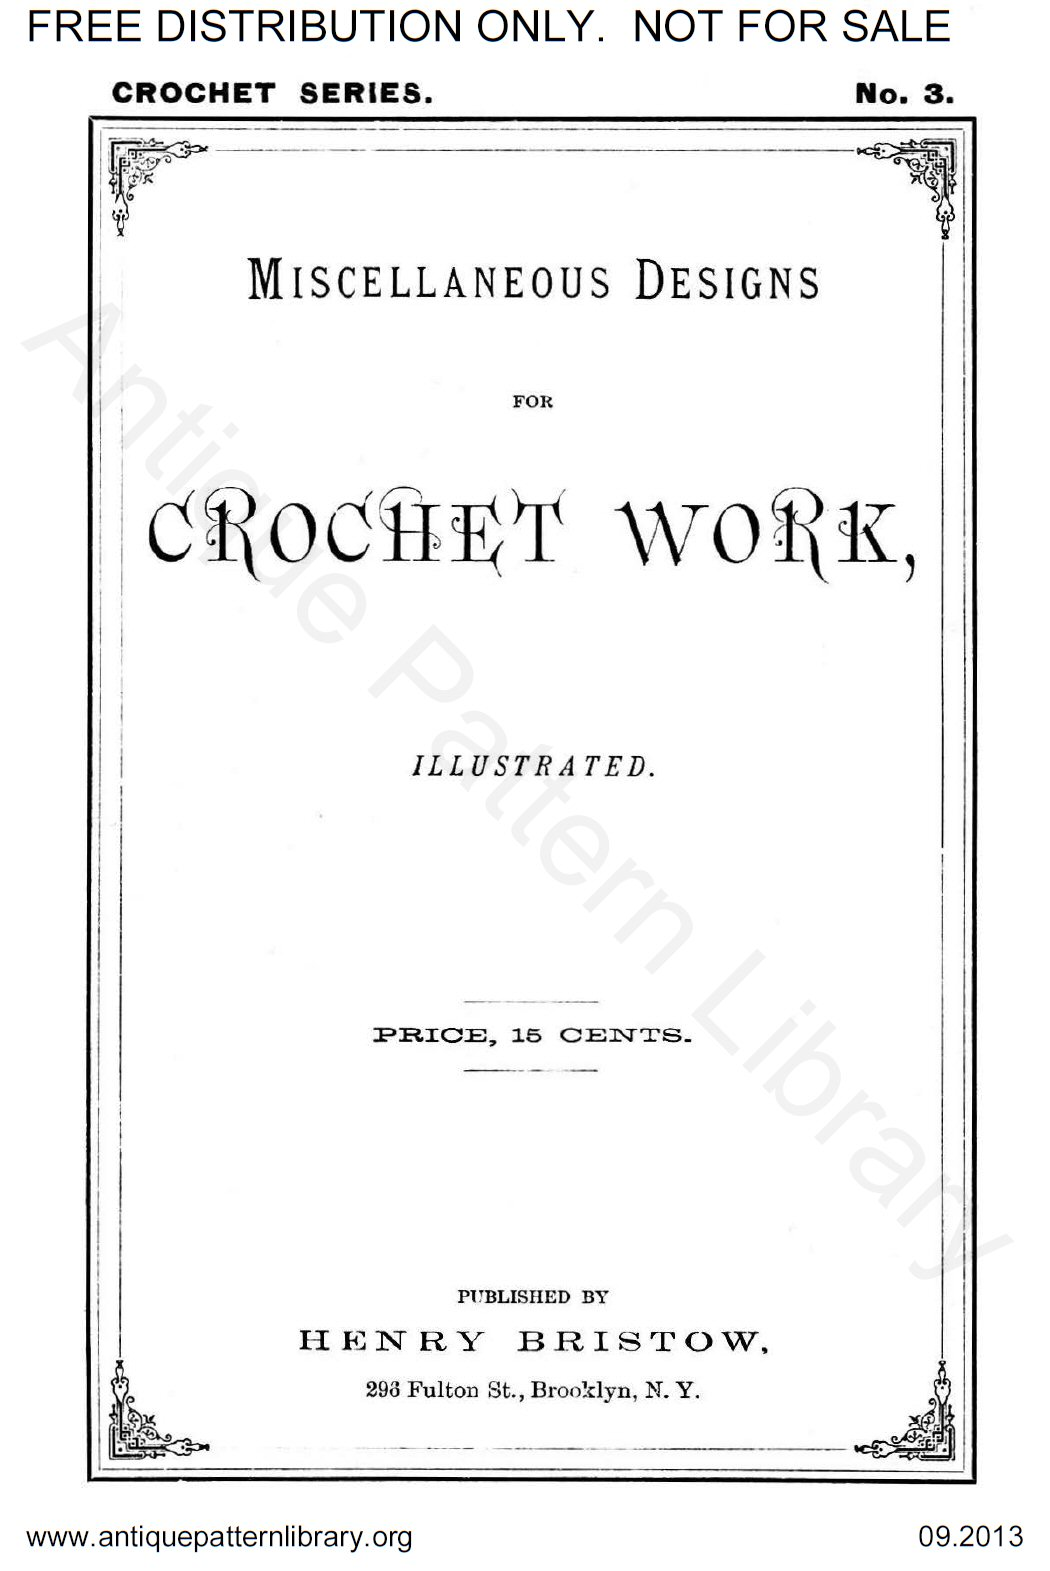 6-JA009 Miscellaneous Designs for Crochet Work, Illustrated